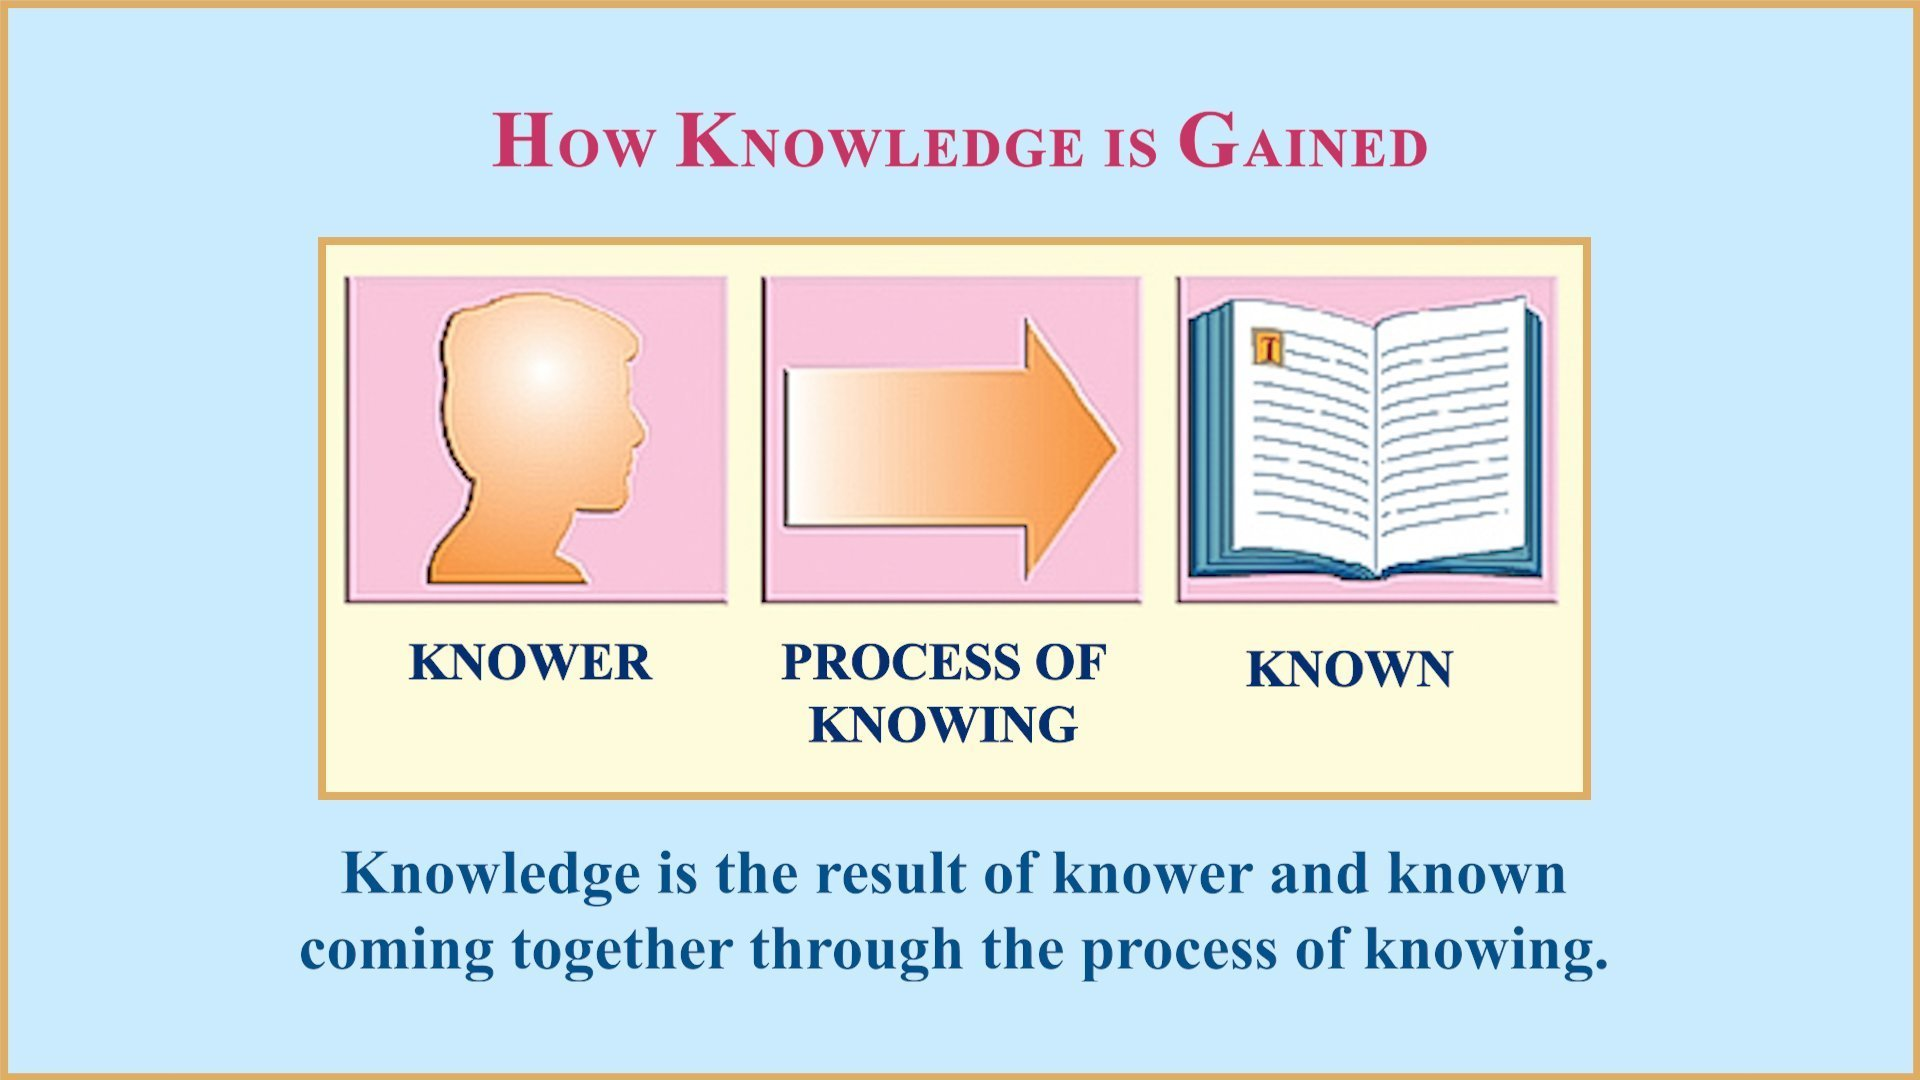 Knowledge is the result of knower and known coming together through the process of knowing.